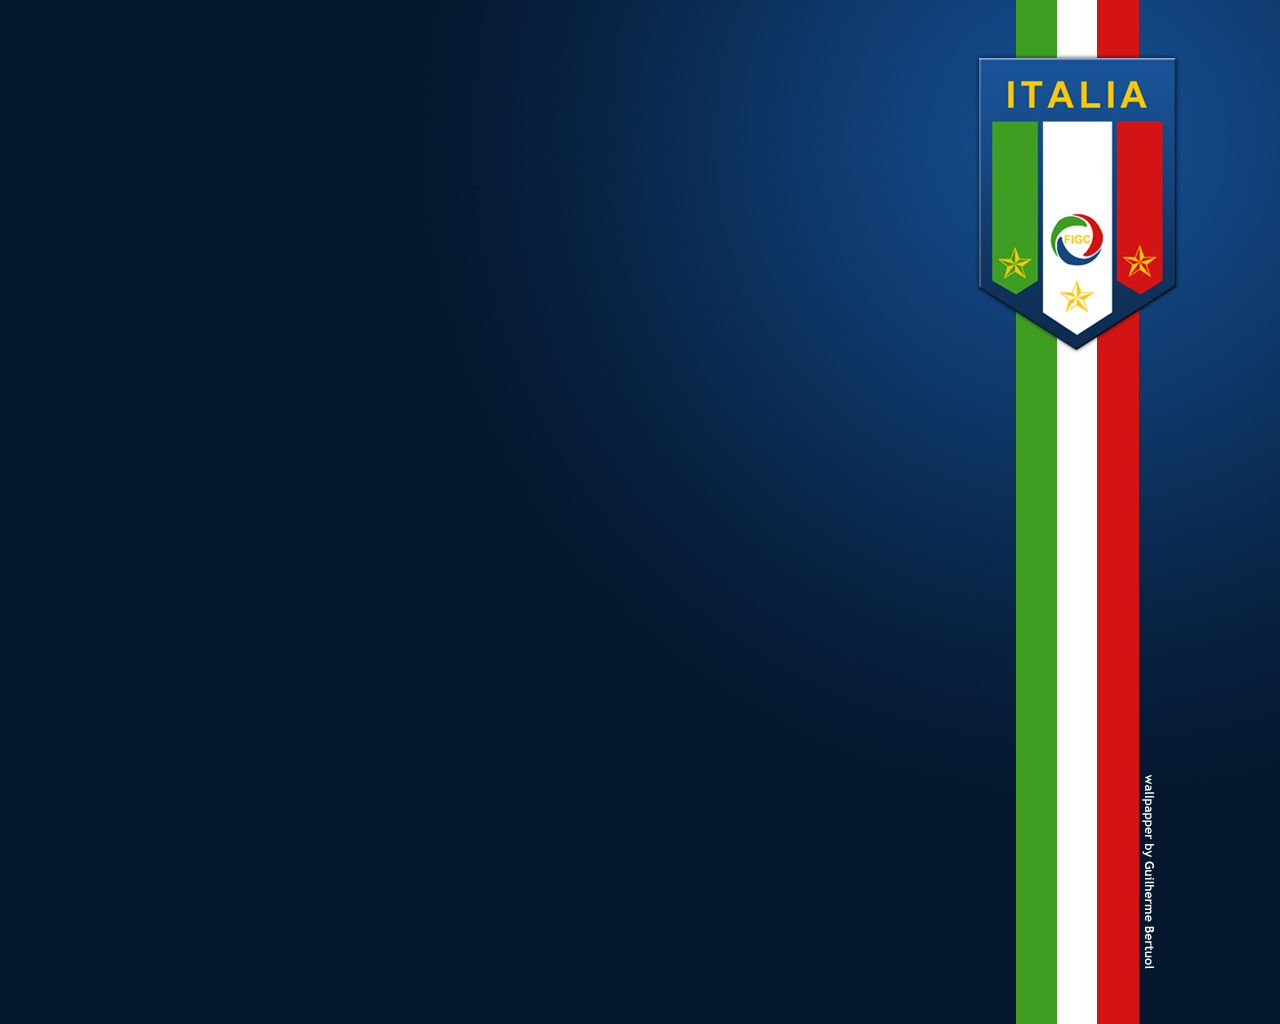 Italy+flag+picture